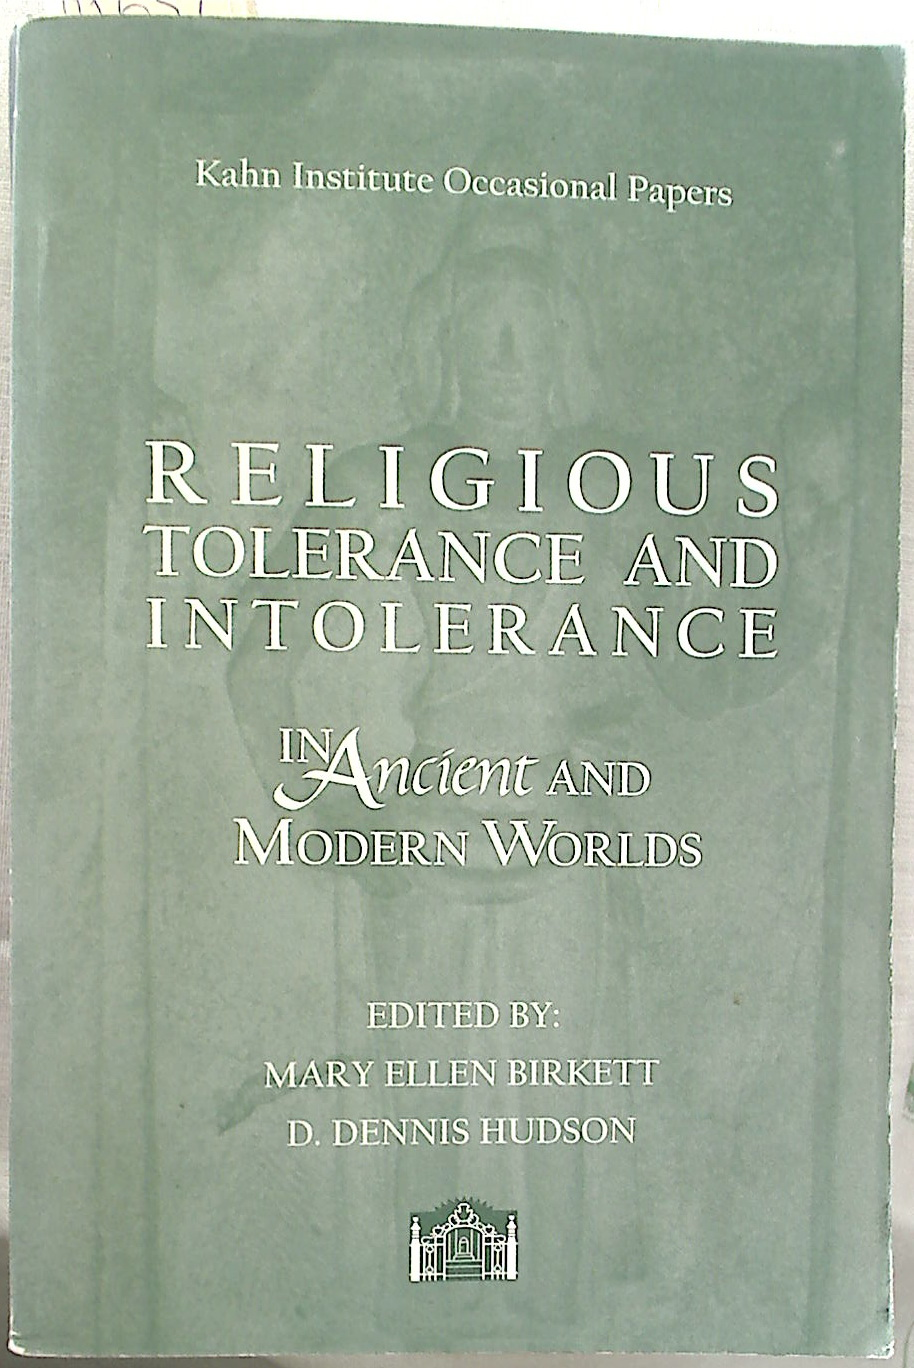 Religious Tolerance and Intolerance in Ancient and Modern Worlds.